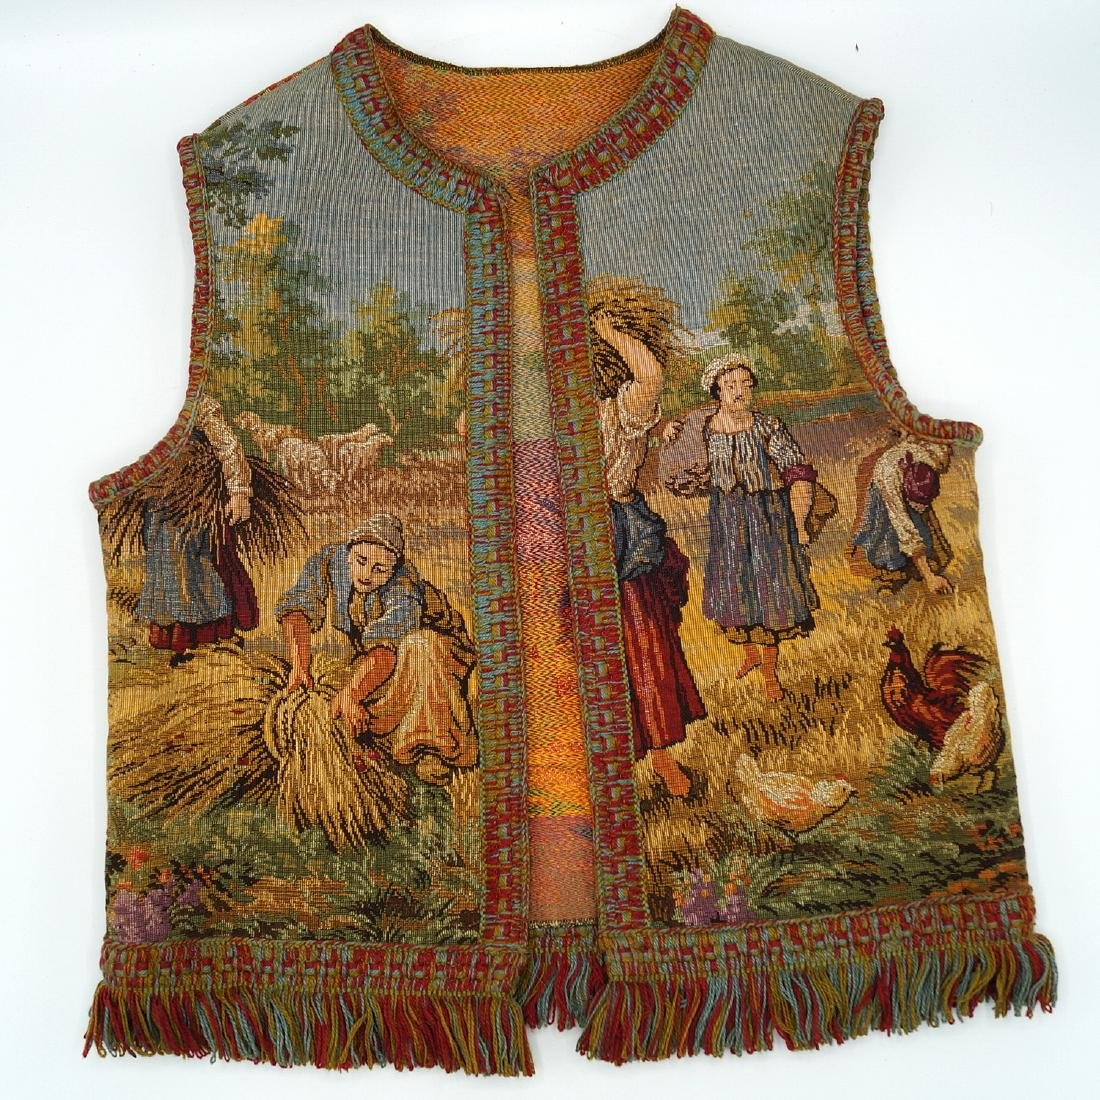 CHILDS MACHINE MADE TAPESTRY VEST